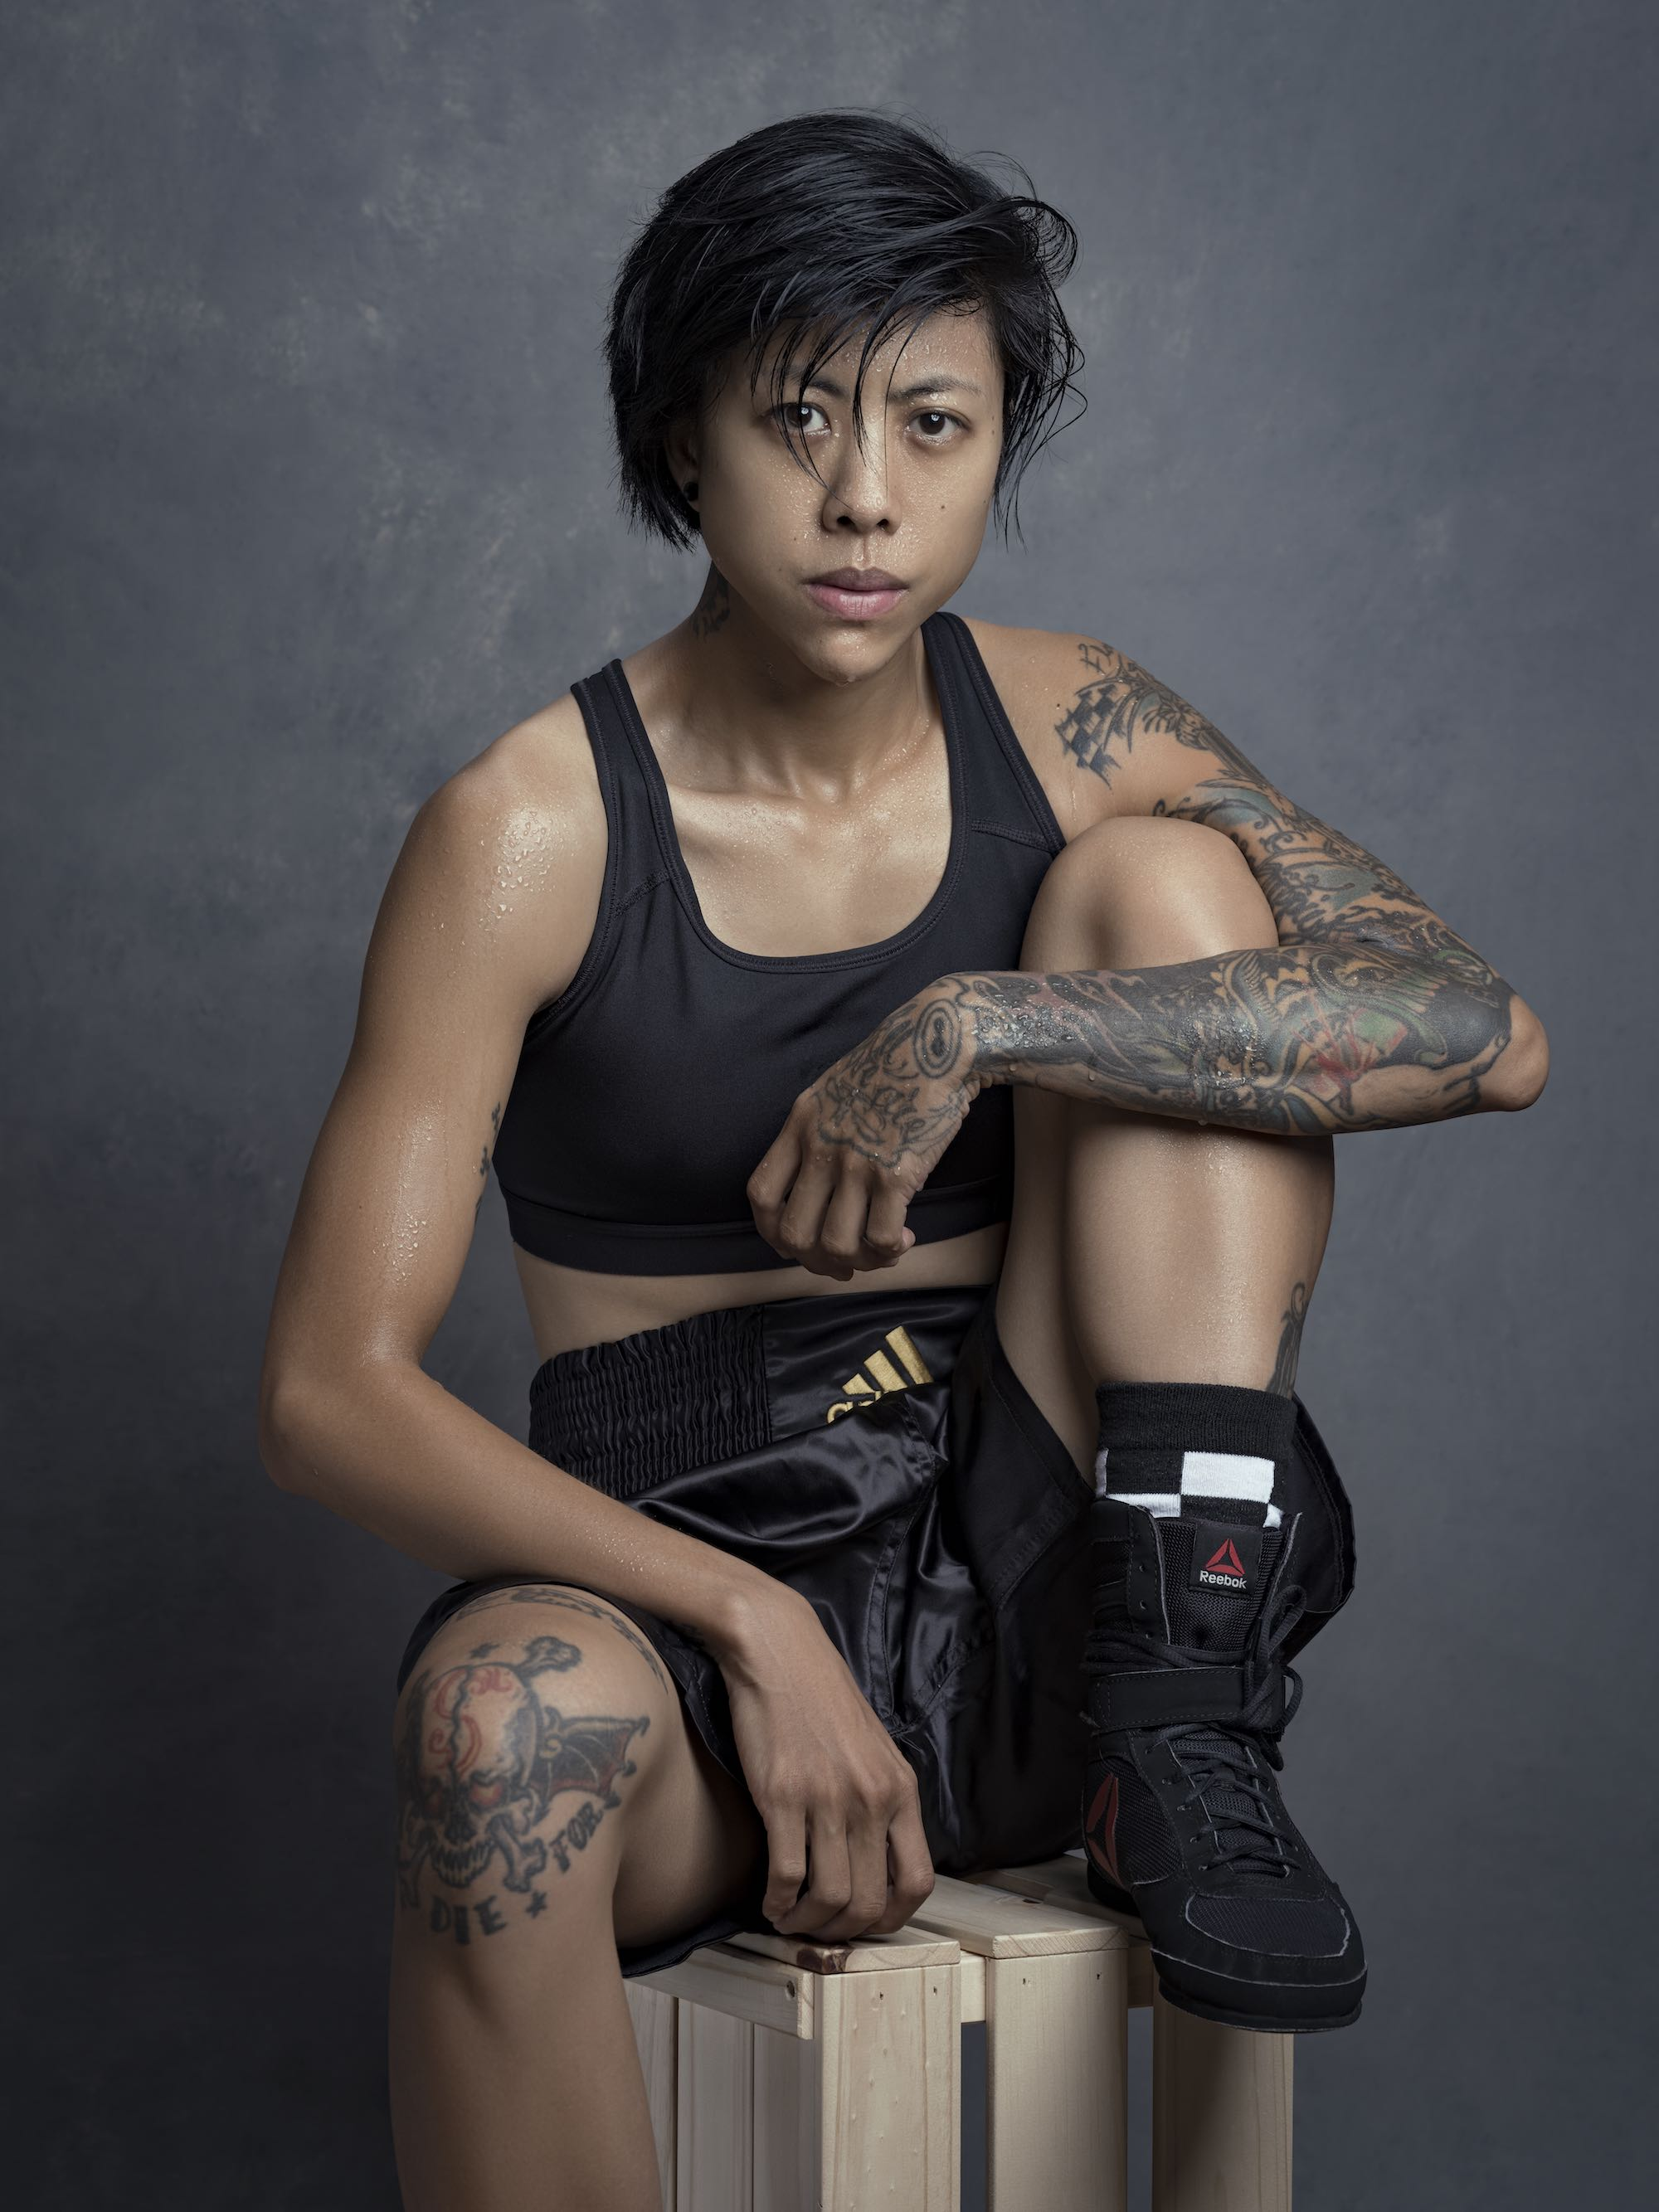 boxe sport model Asia Commercial Editorial Portraiture Documentary Photographer fujifilm Director Singapore Jose Jeuland photography fashion